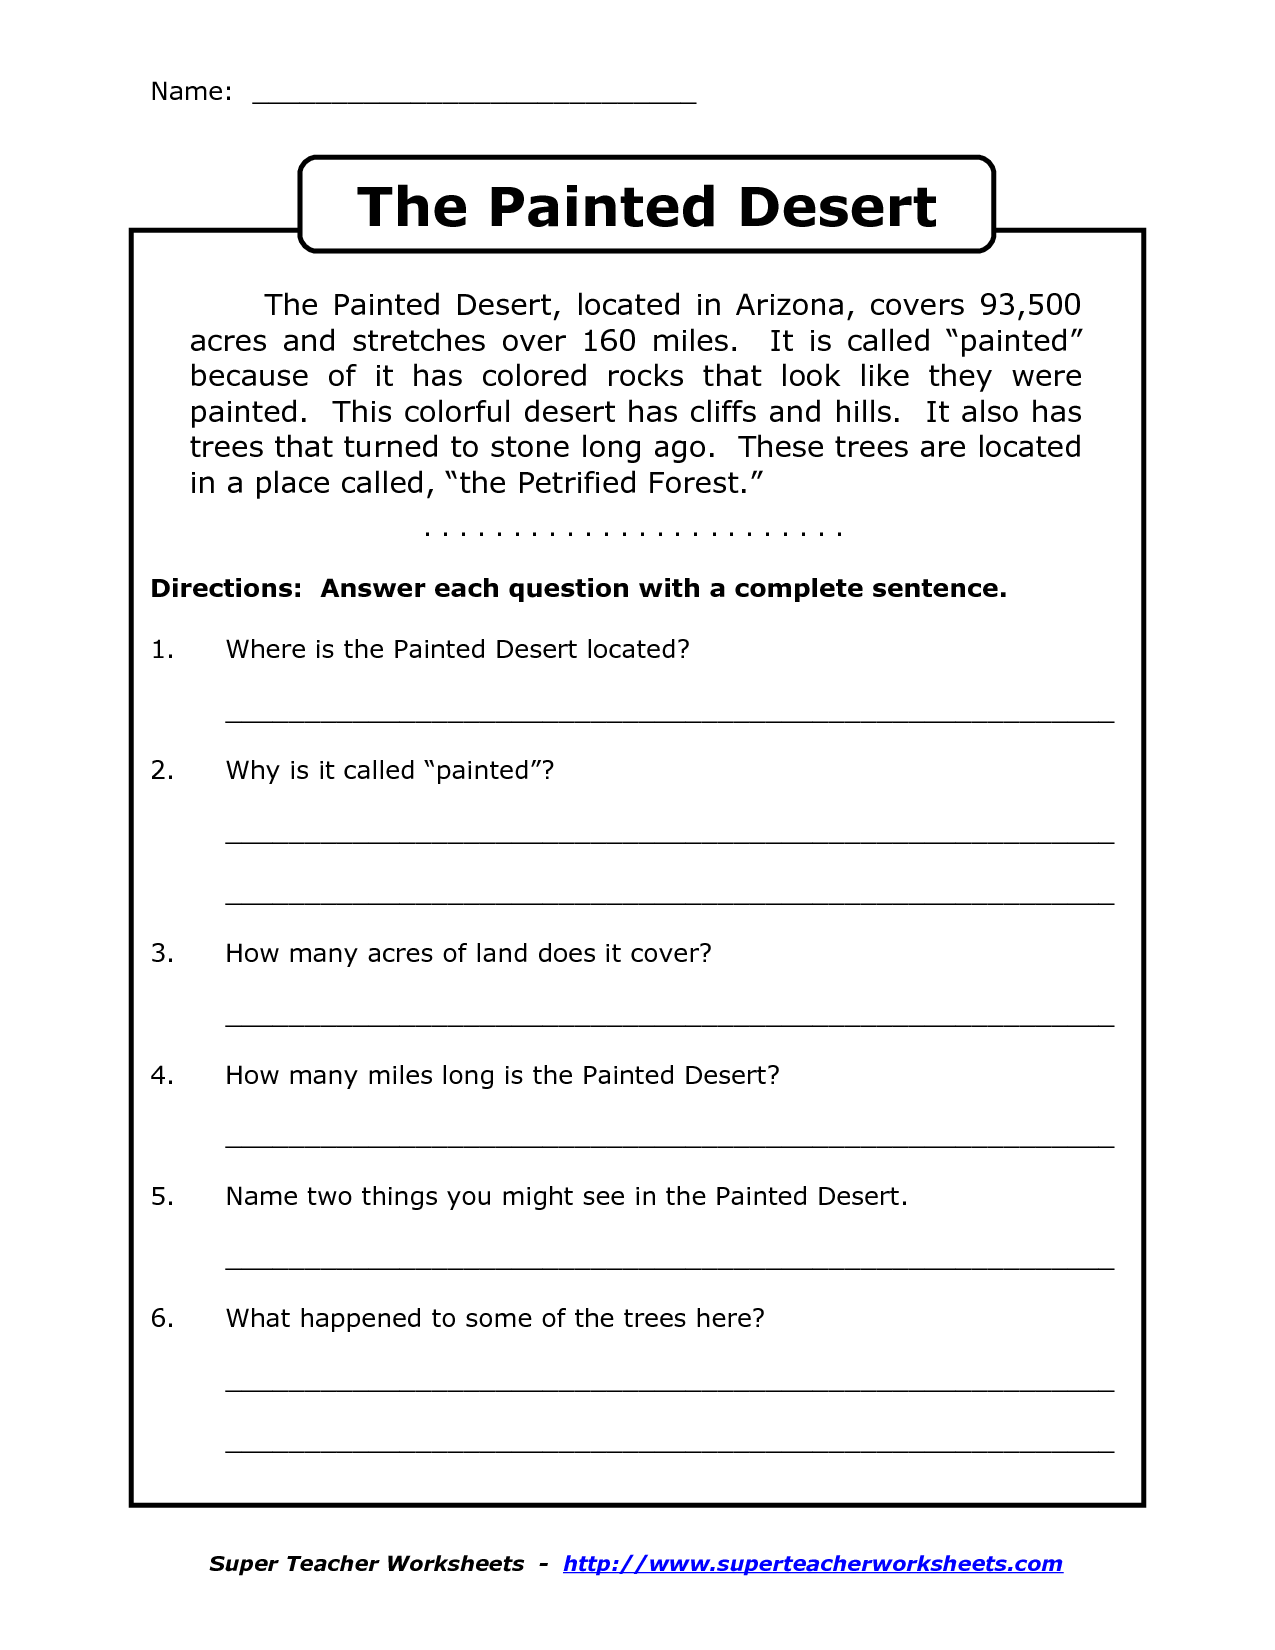 Worksheets Reading Comprehension Printable Worksheets reading worksheets for 4th grade comprehension 3 name the painted desert